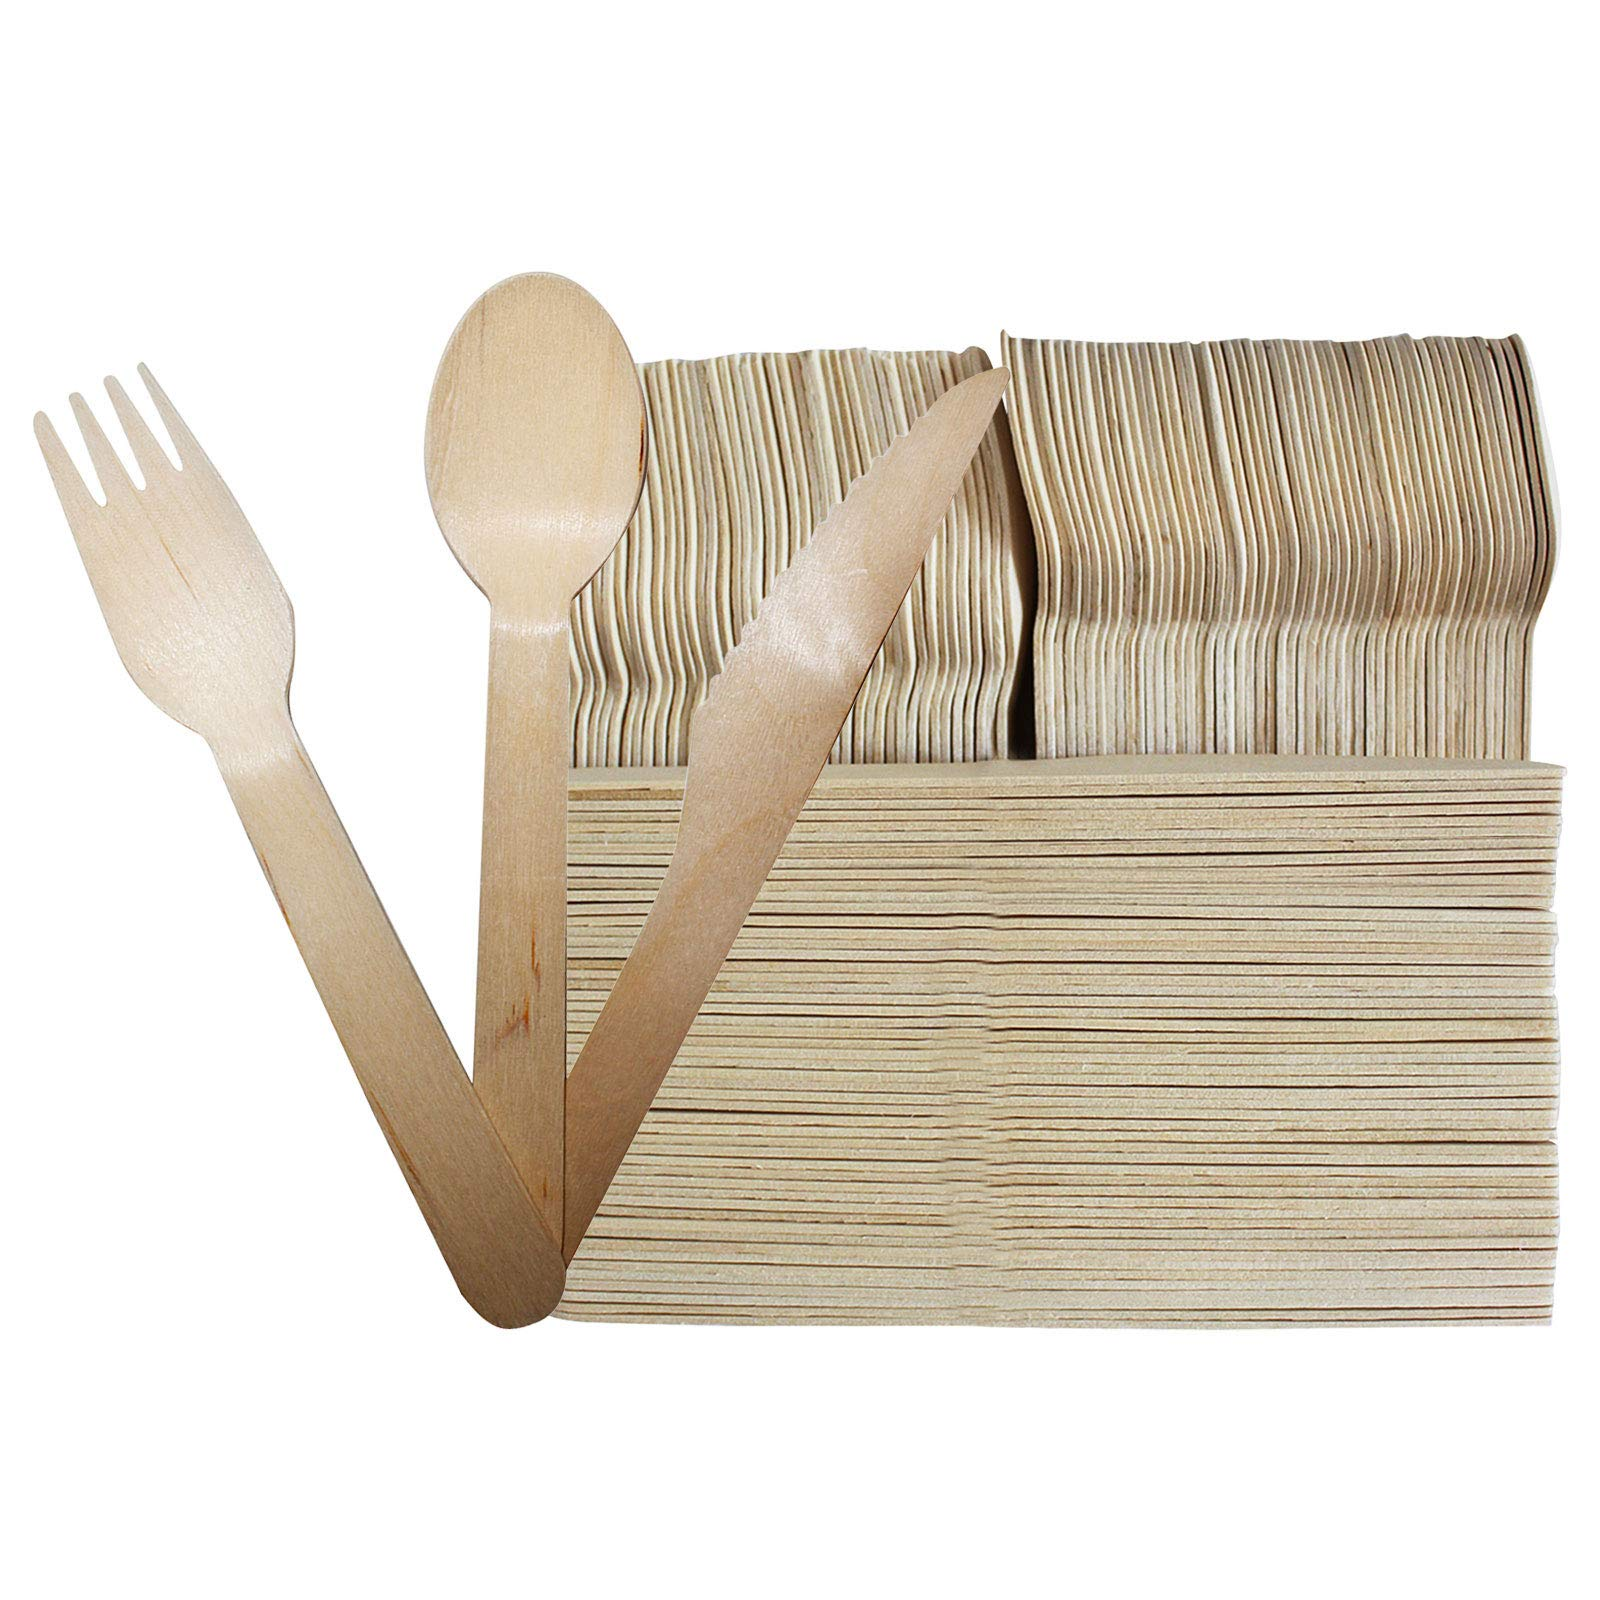 200 Pcs Disposable Wooden Cutlery Sets - Forks (100), Spoons (50) and Knives (50) - Alternative for Plastic ? Eco friendly Cutlery- Travel tableware for Parties, Weddings & Dinner Events, Picnics, Sch